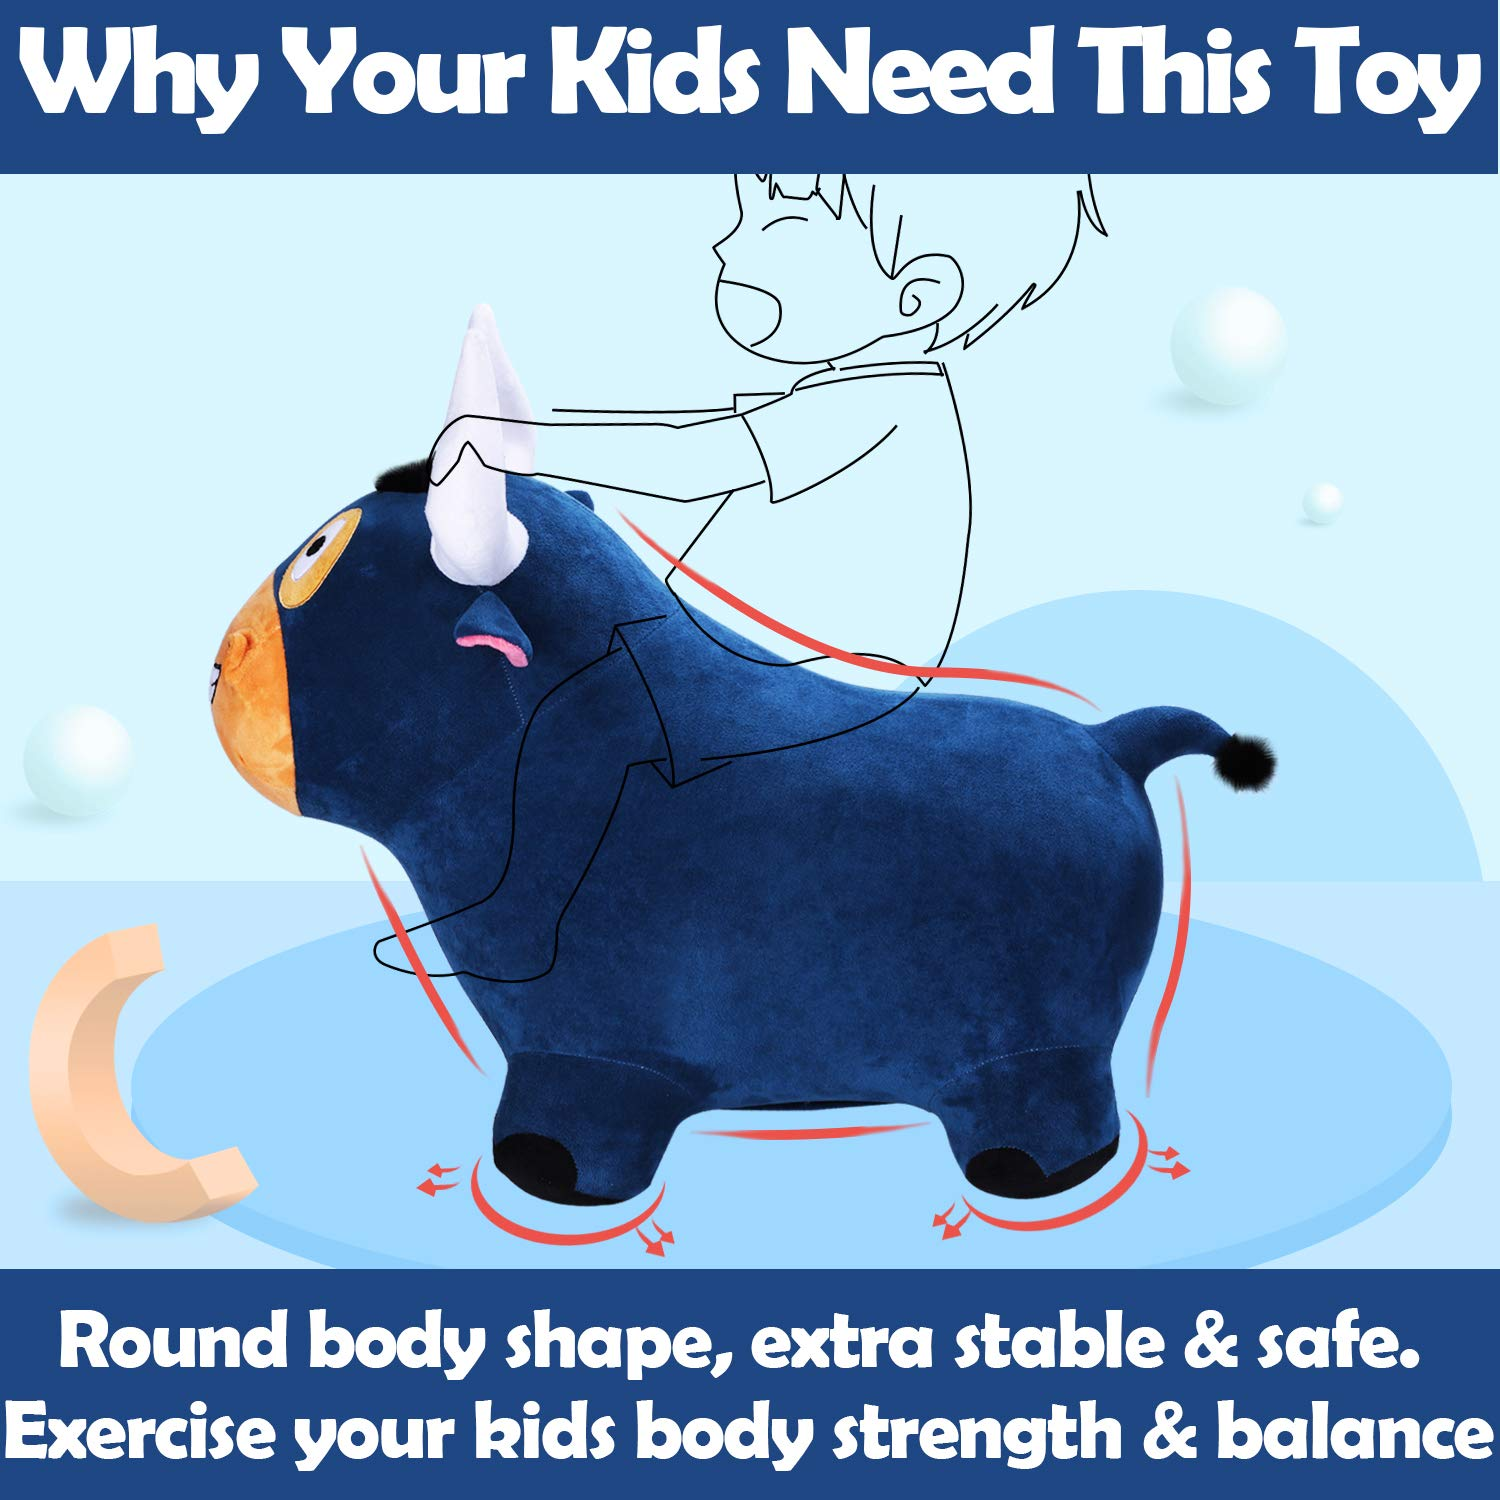 Girls iLearn Bouncy Bull Plush Riding Hopper Horse Kids iPlay Boys 5 Year Olds Outdoor Ride on Toys 4 Toddler Bouncer Jumping Gifts with Pump for 3 Inflatable Hopping Farm Animals